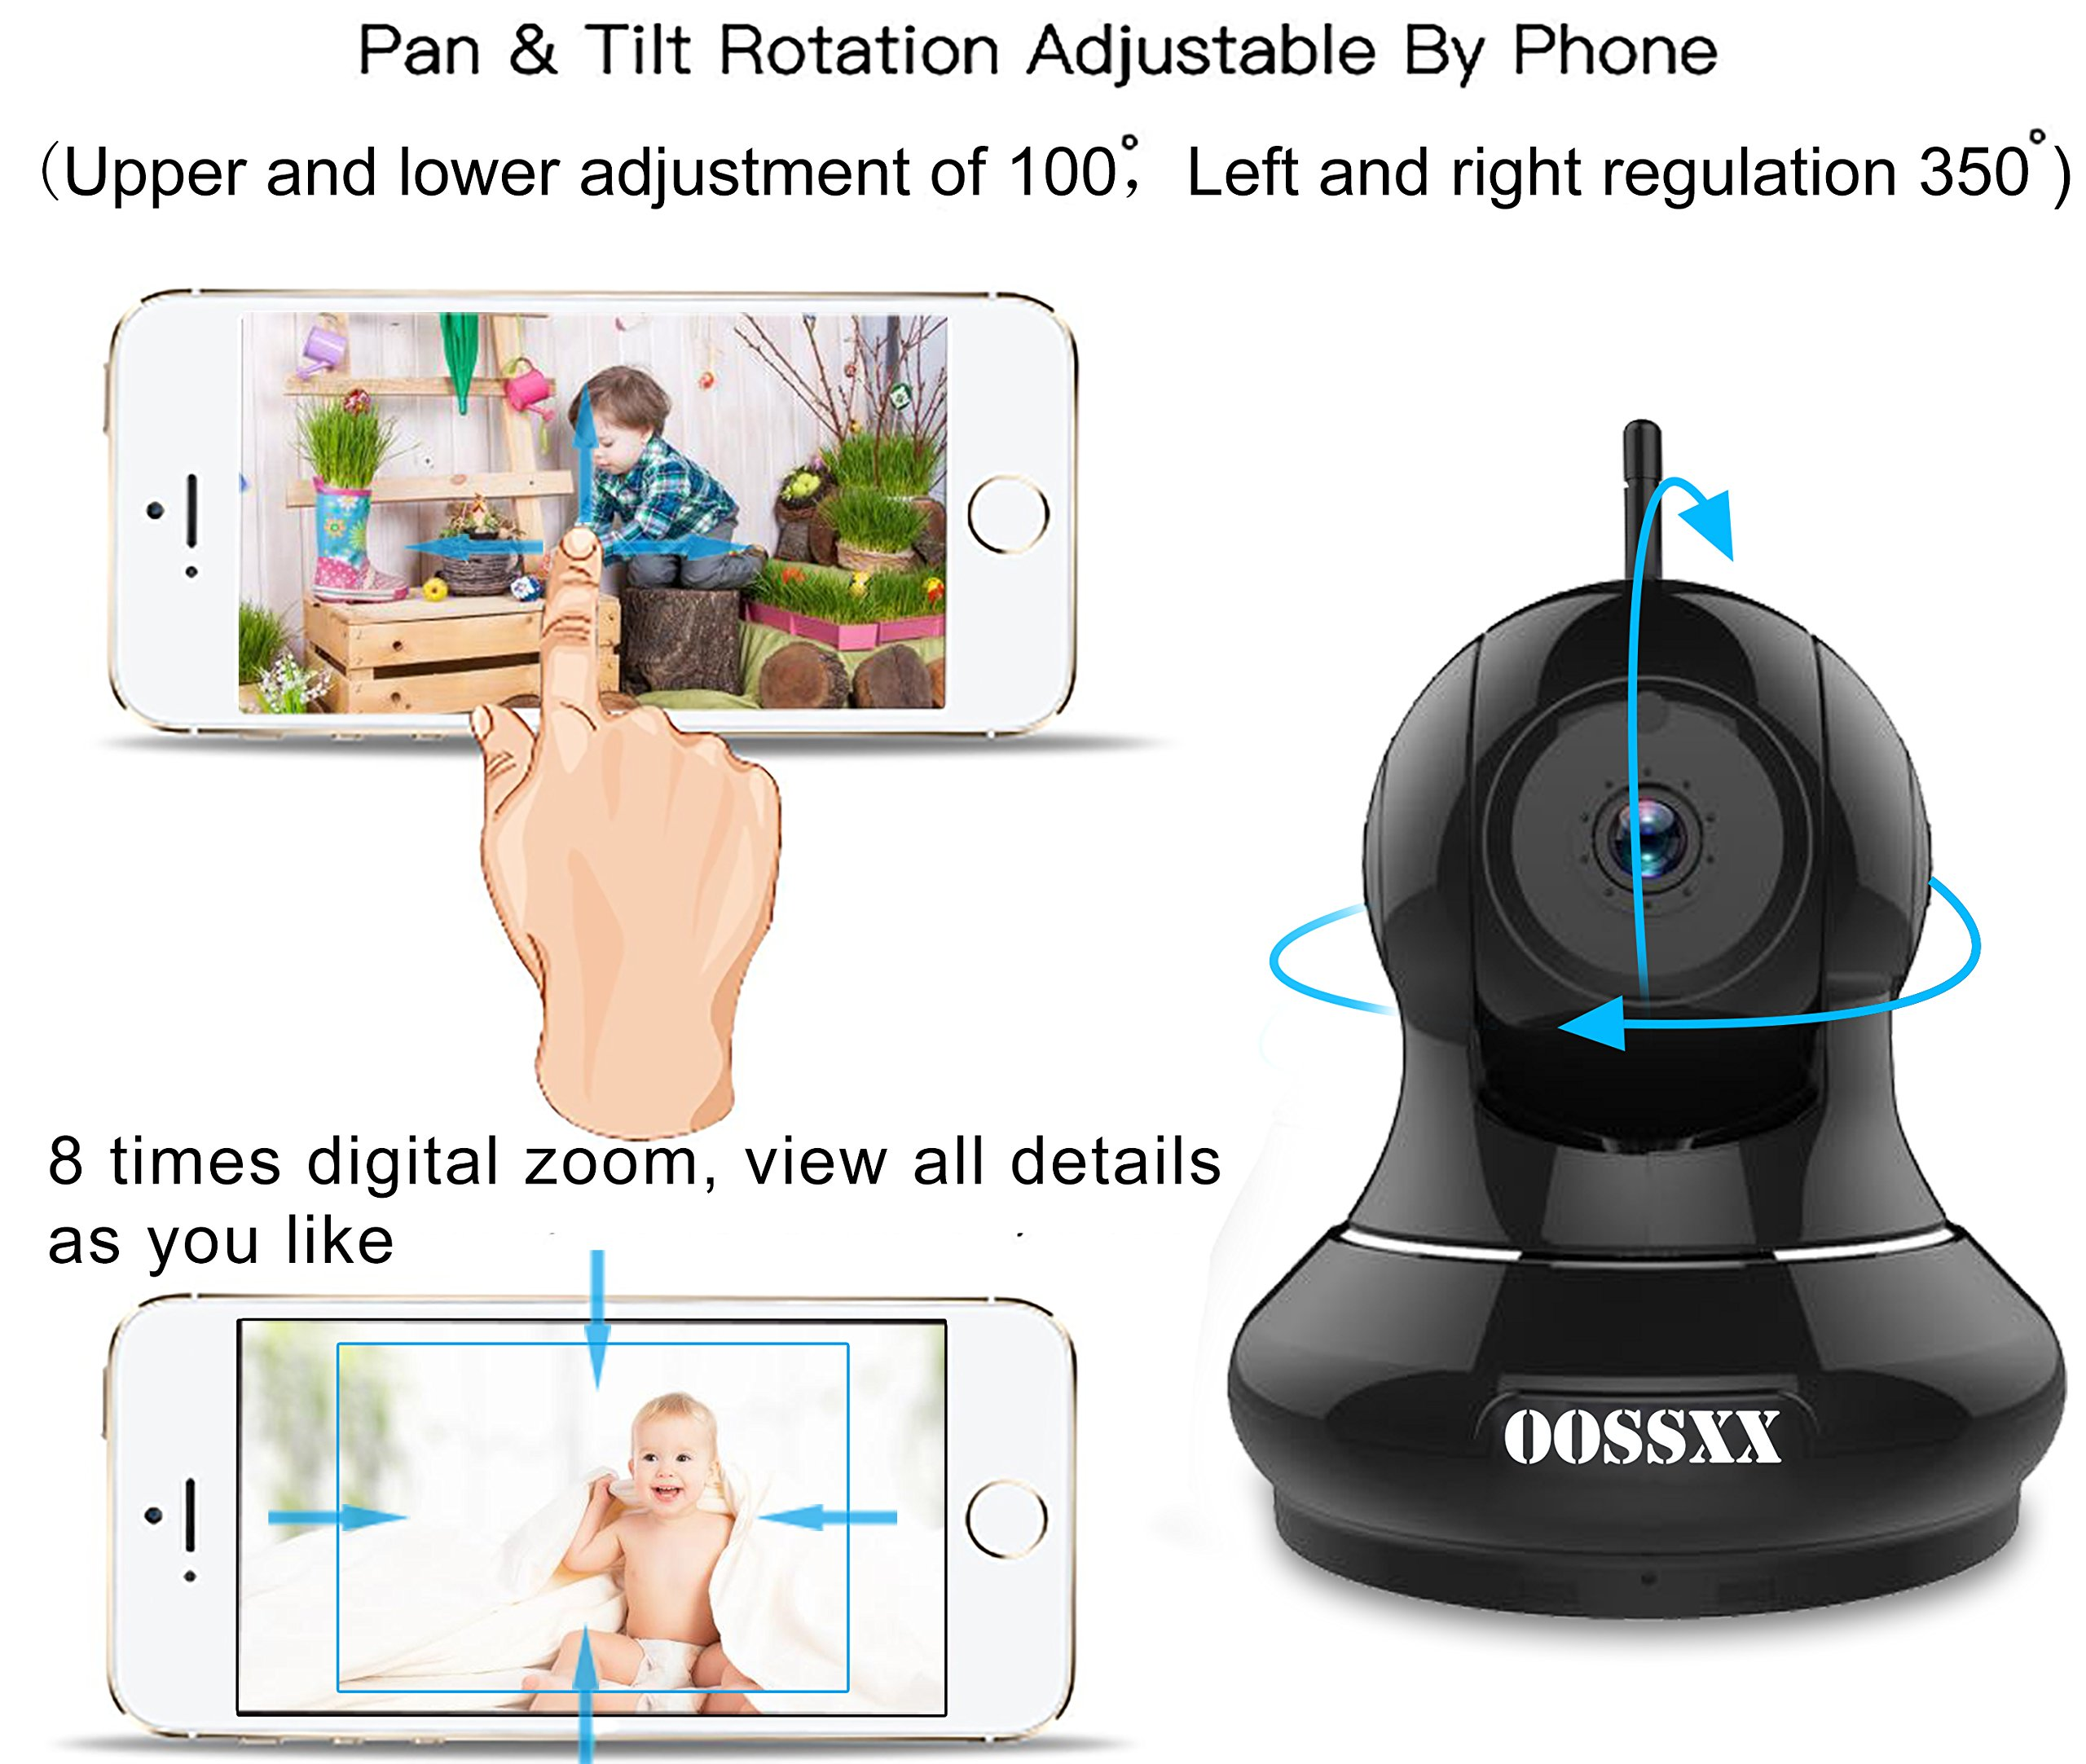 1080P Home/Business Wireless IP Camera, OOSSXX HD Indoor Wireless Security Camera with Motion Detection, Two Way Audio, Pan/Tilt, Night Vision, Multi camera preview,for Baby Monitor, Nanny Cam,Pet Cam by OOSSXX (Image #4)